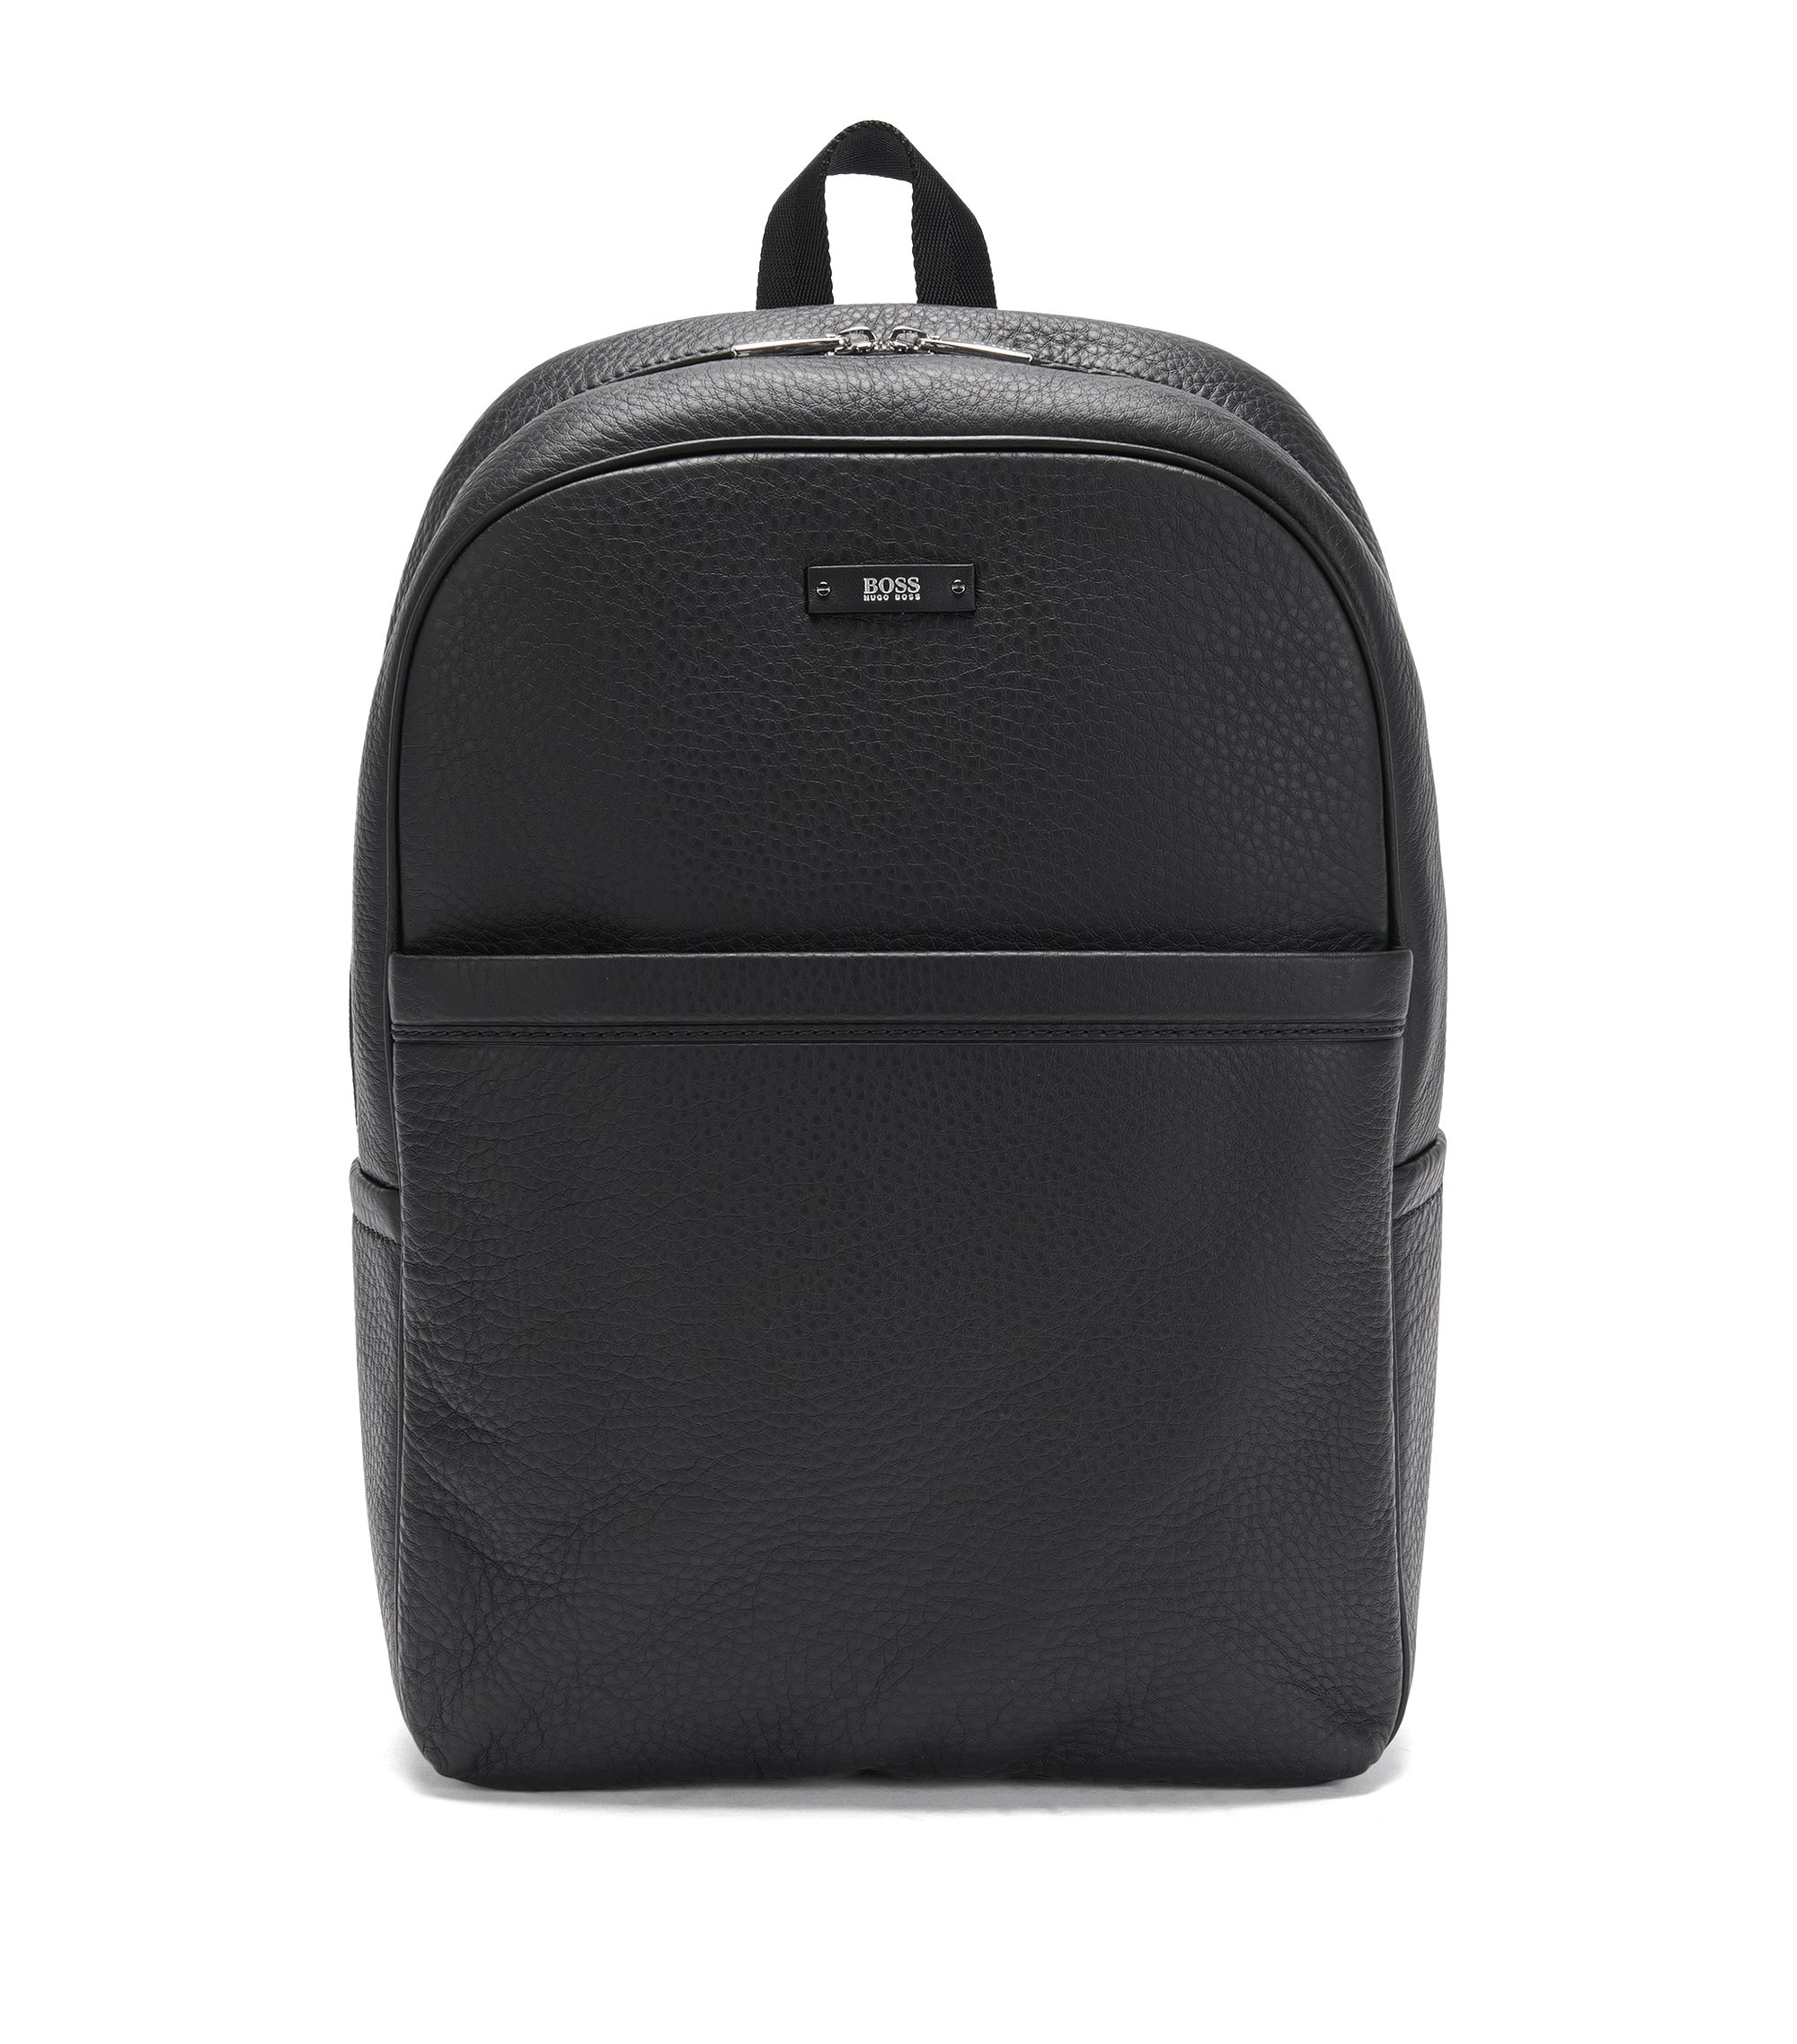 Textured Leather Backpack | Traveller Backp S17, Black